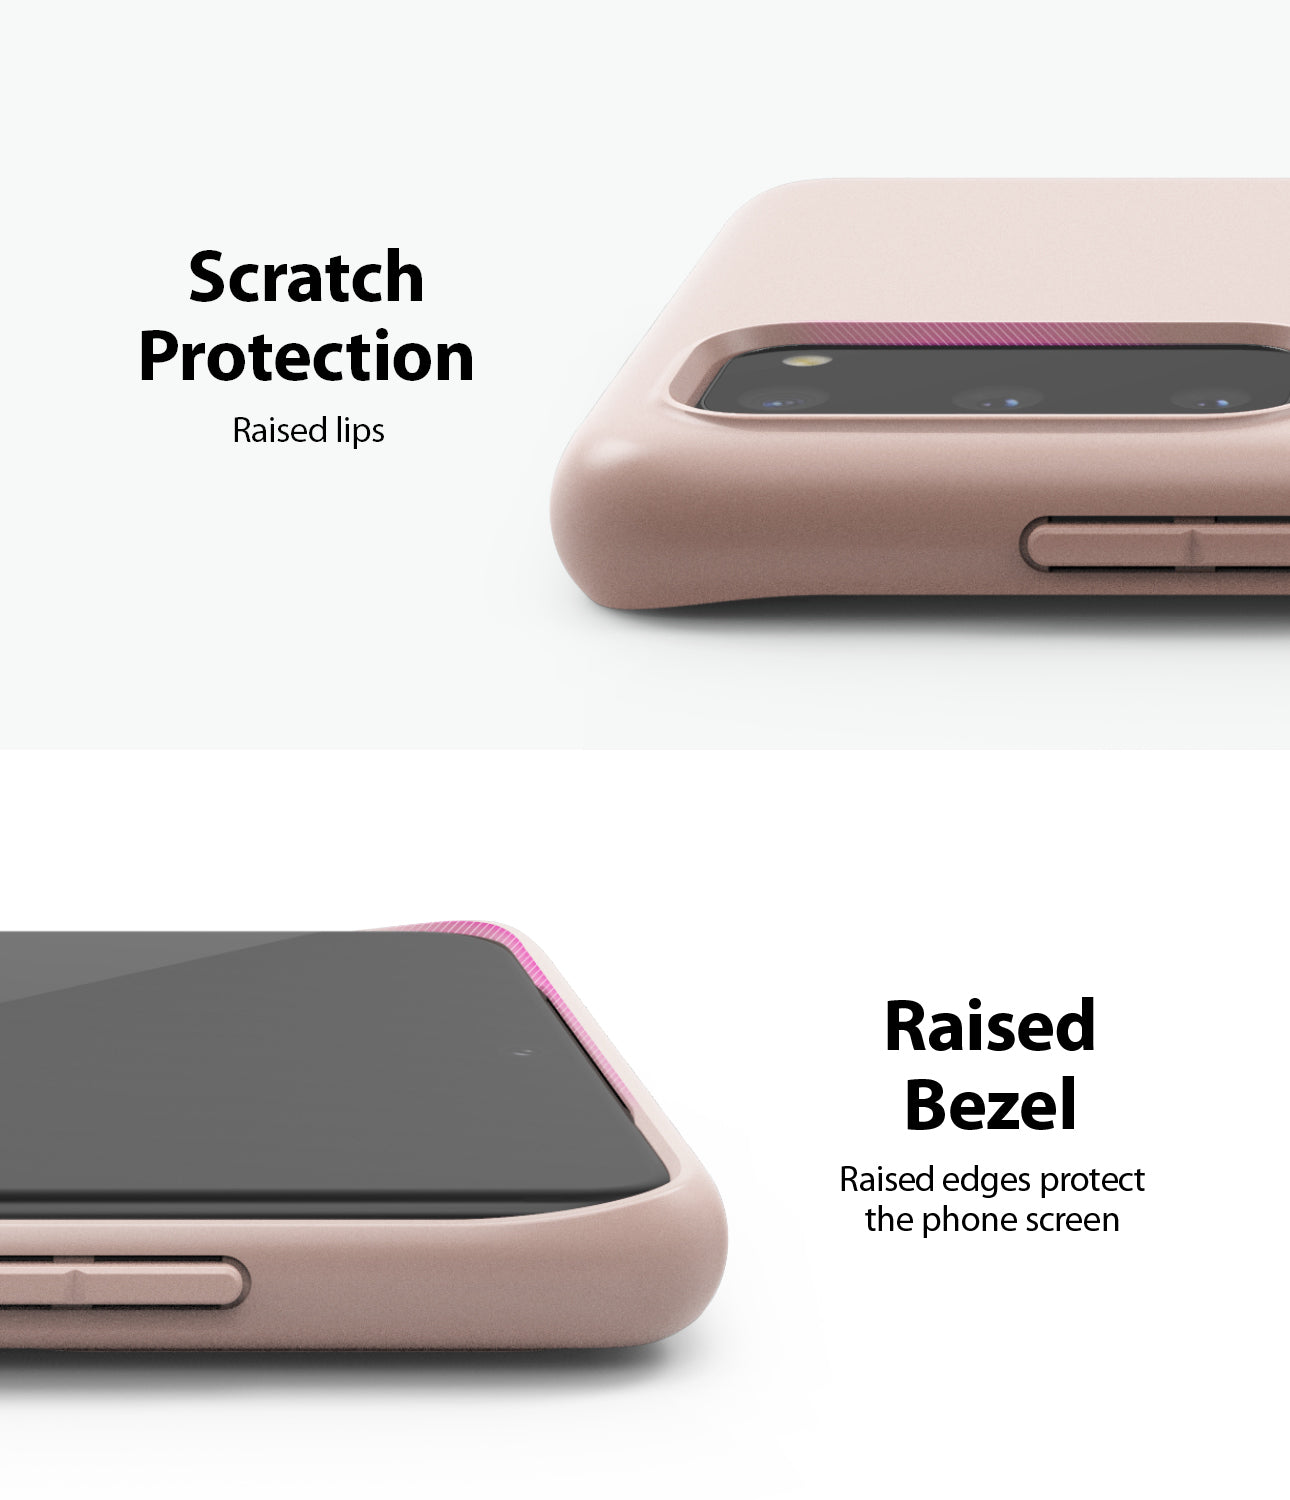 ringke galaxy s20 air-s case 5G, Coral, Lavender Gray, Pink Sand, Slim Case, scratch protection, raised bezel